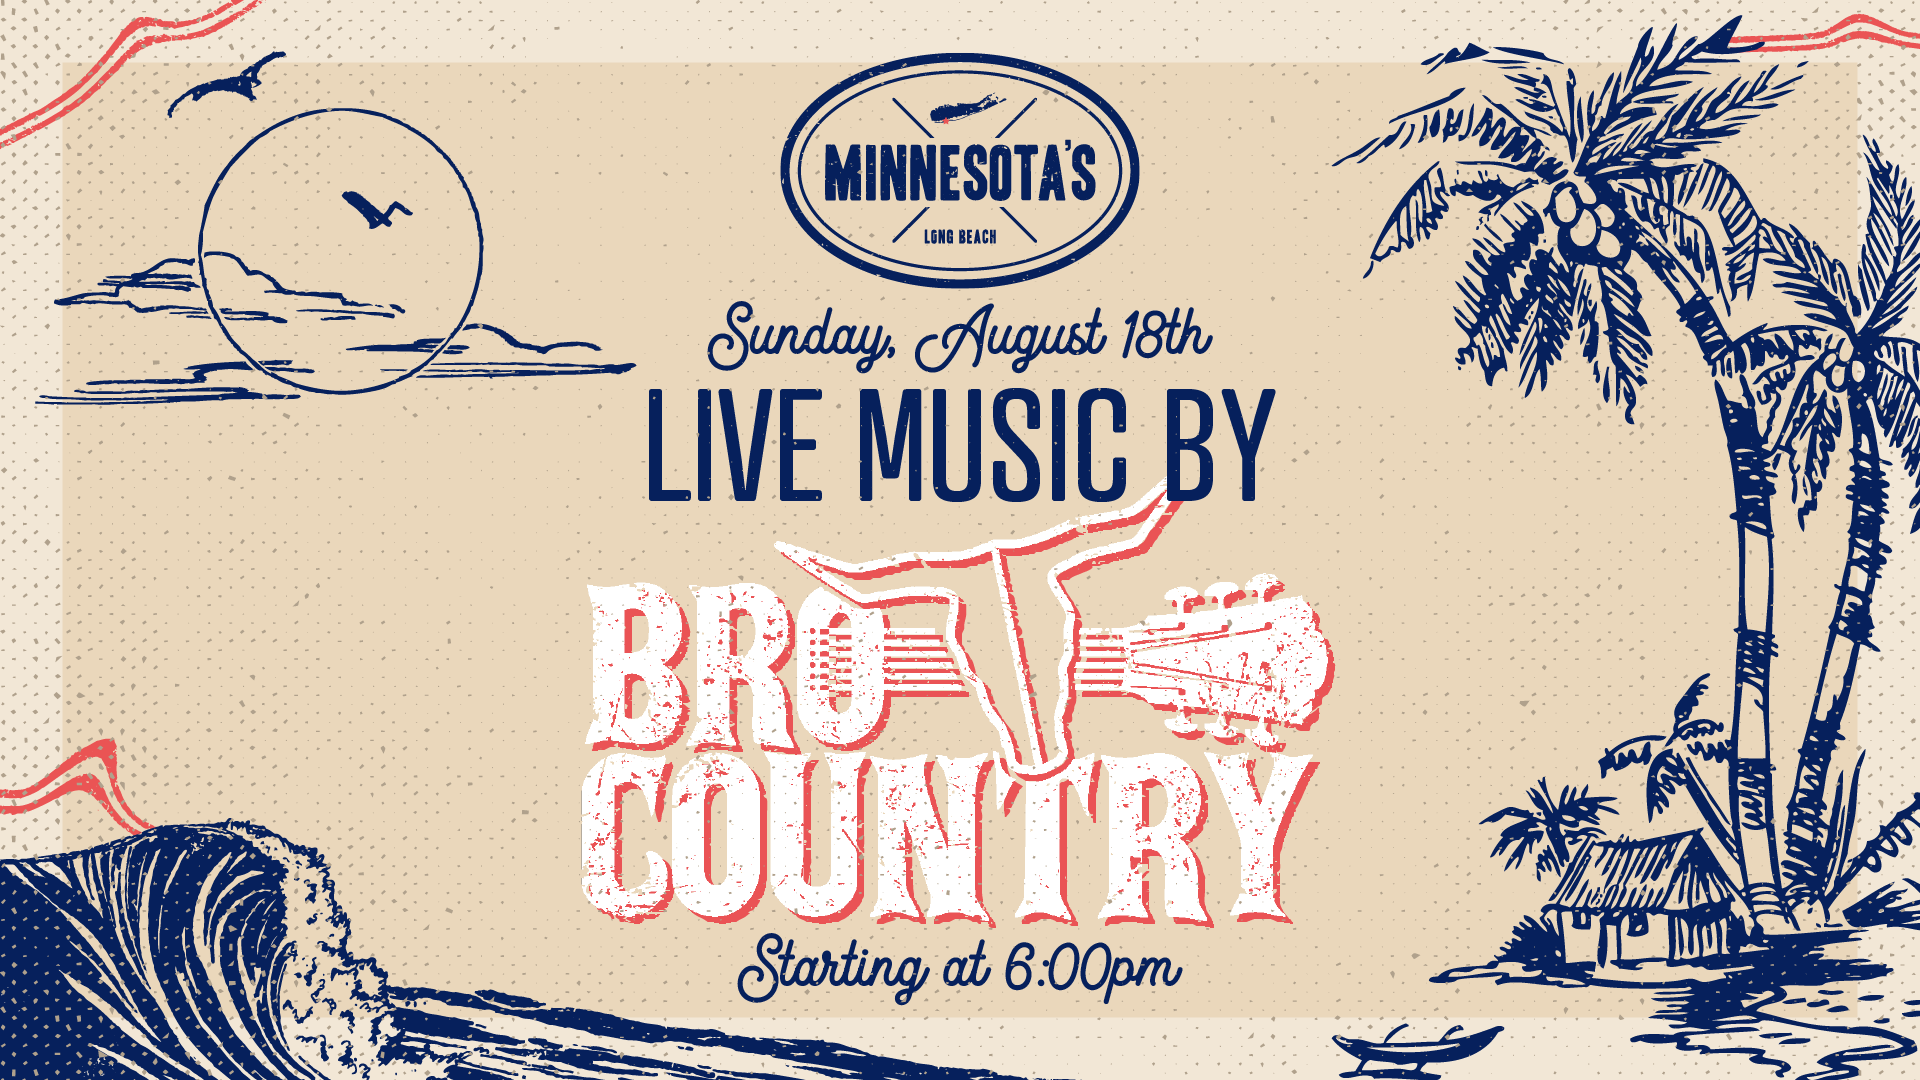 Live music with Bro Country on August 18th at 6 PM